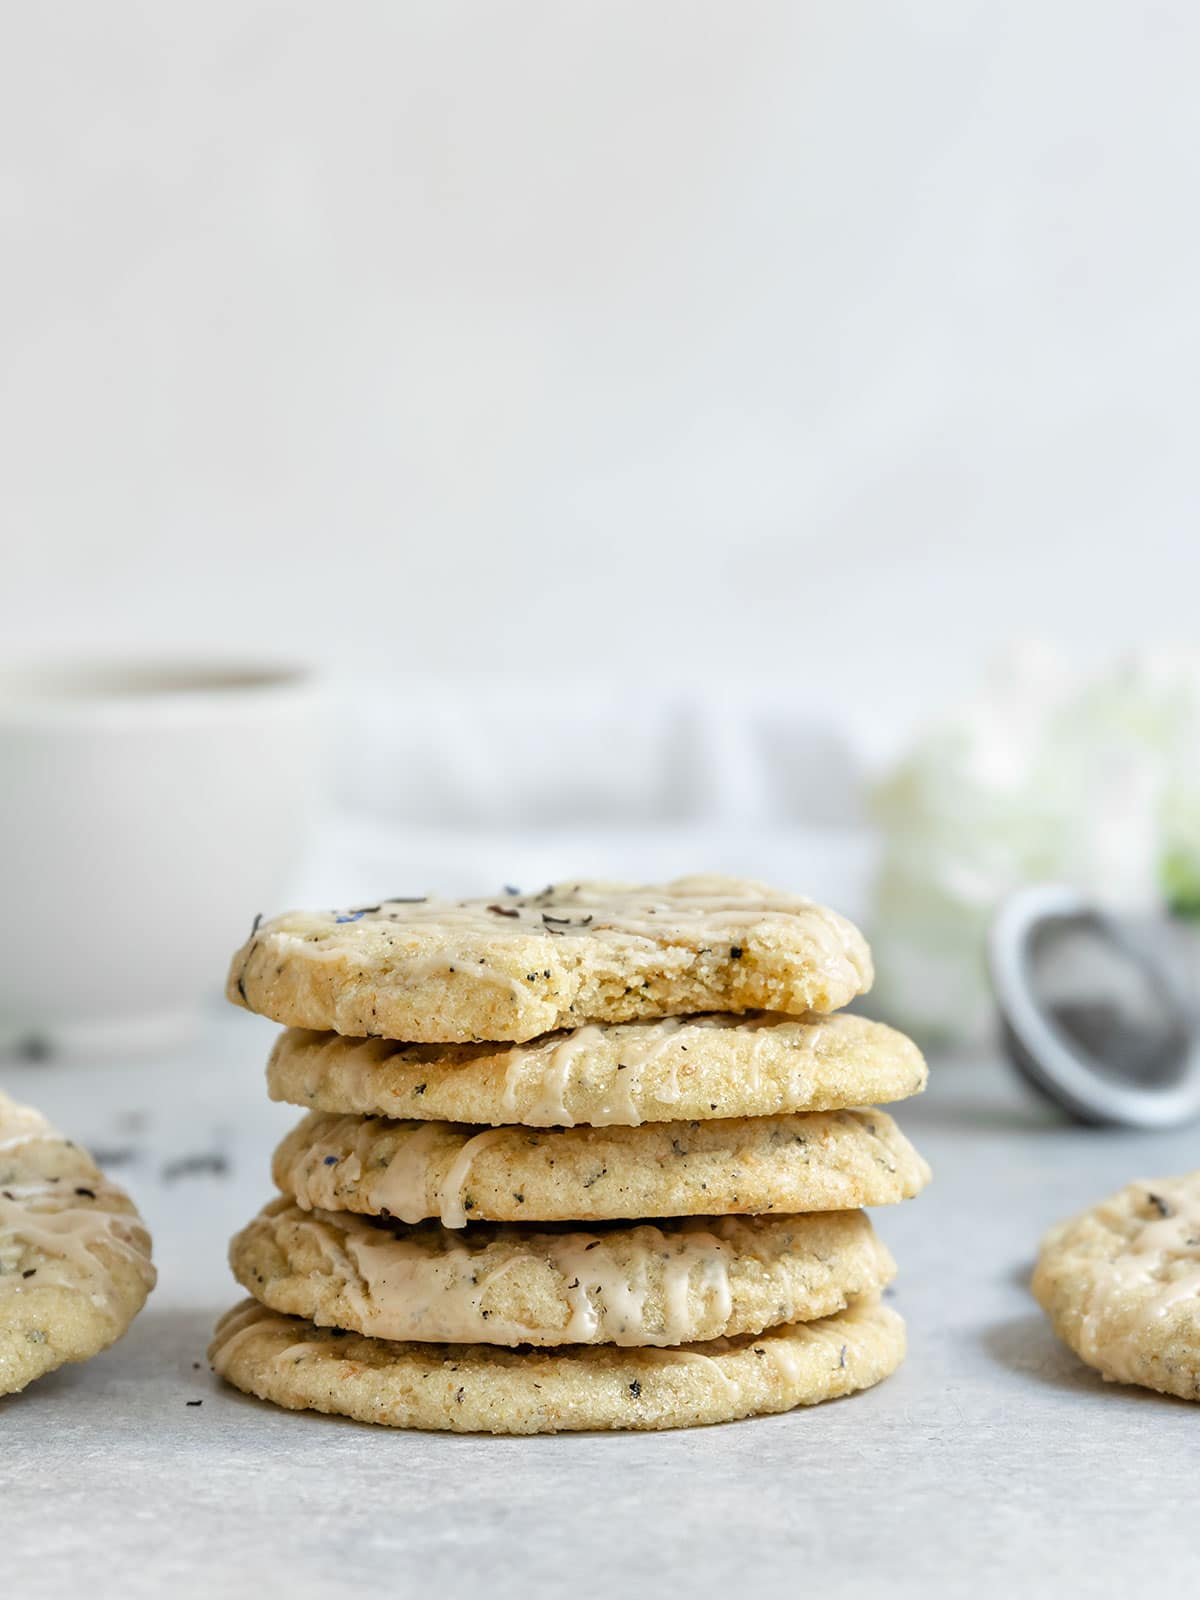 a stack of 5 earl grey sugar cookies with a bite taken out of the top cookie